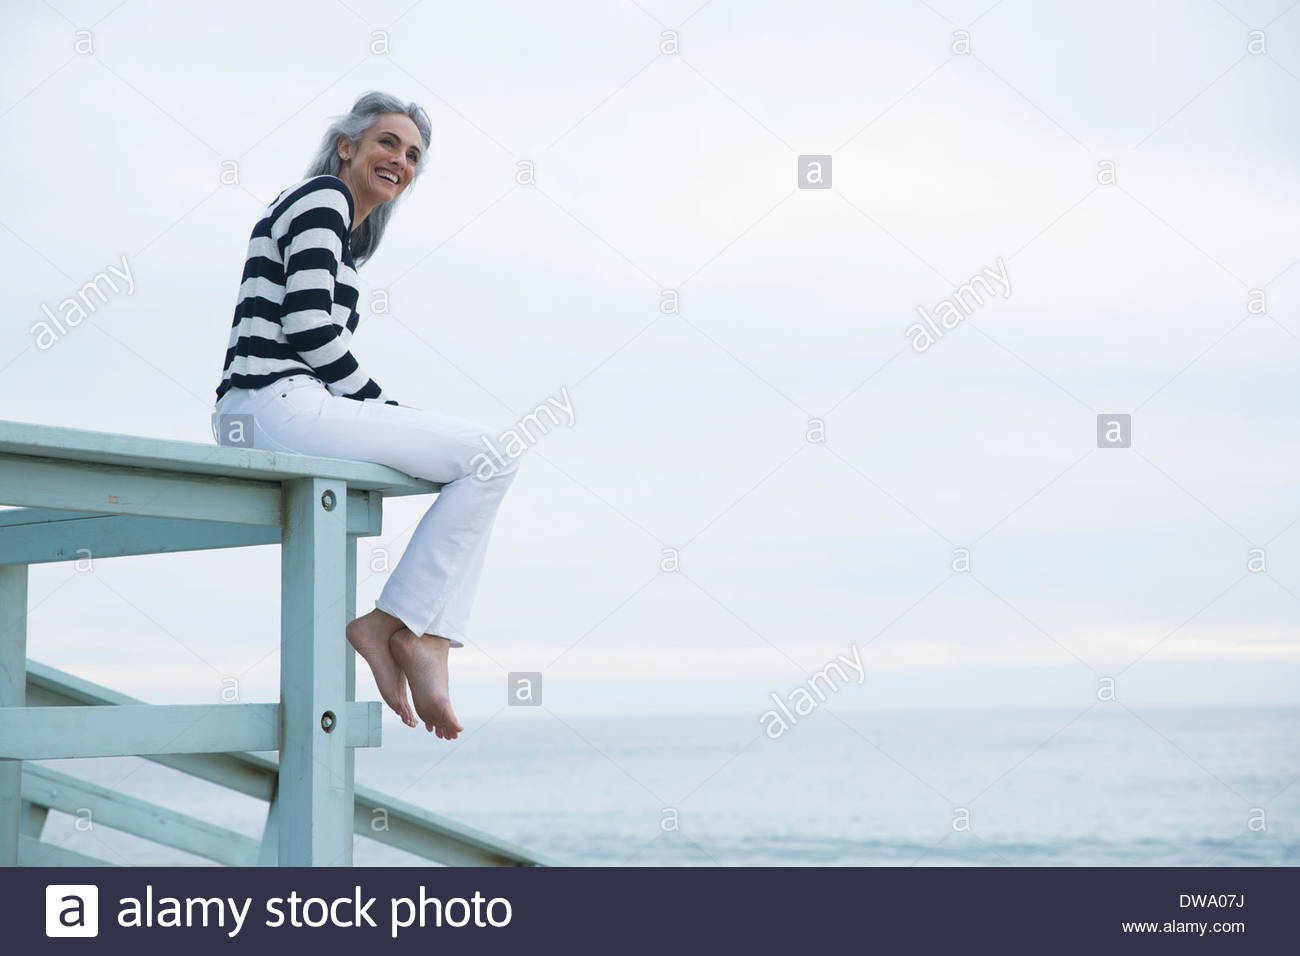 Mature woman sitting on beach house balcony, Los Angeles, California, USA - Stock Image